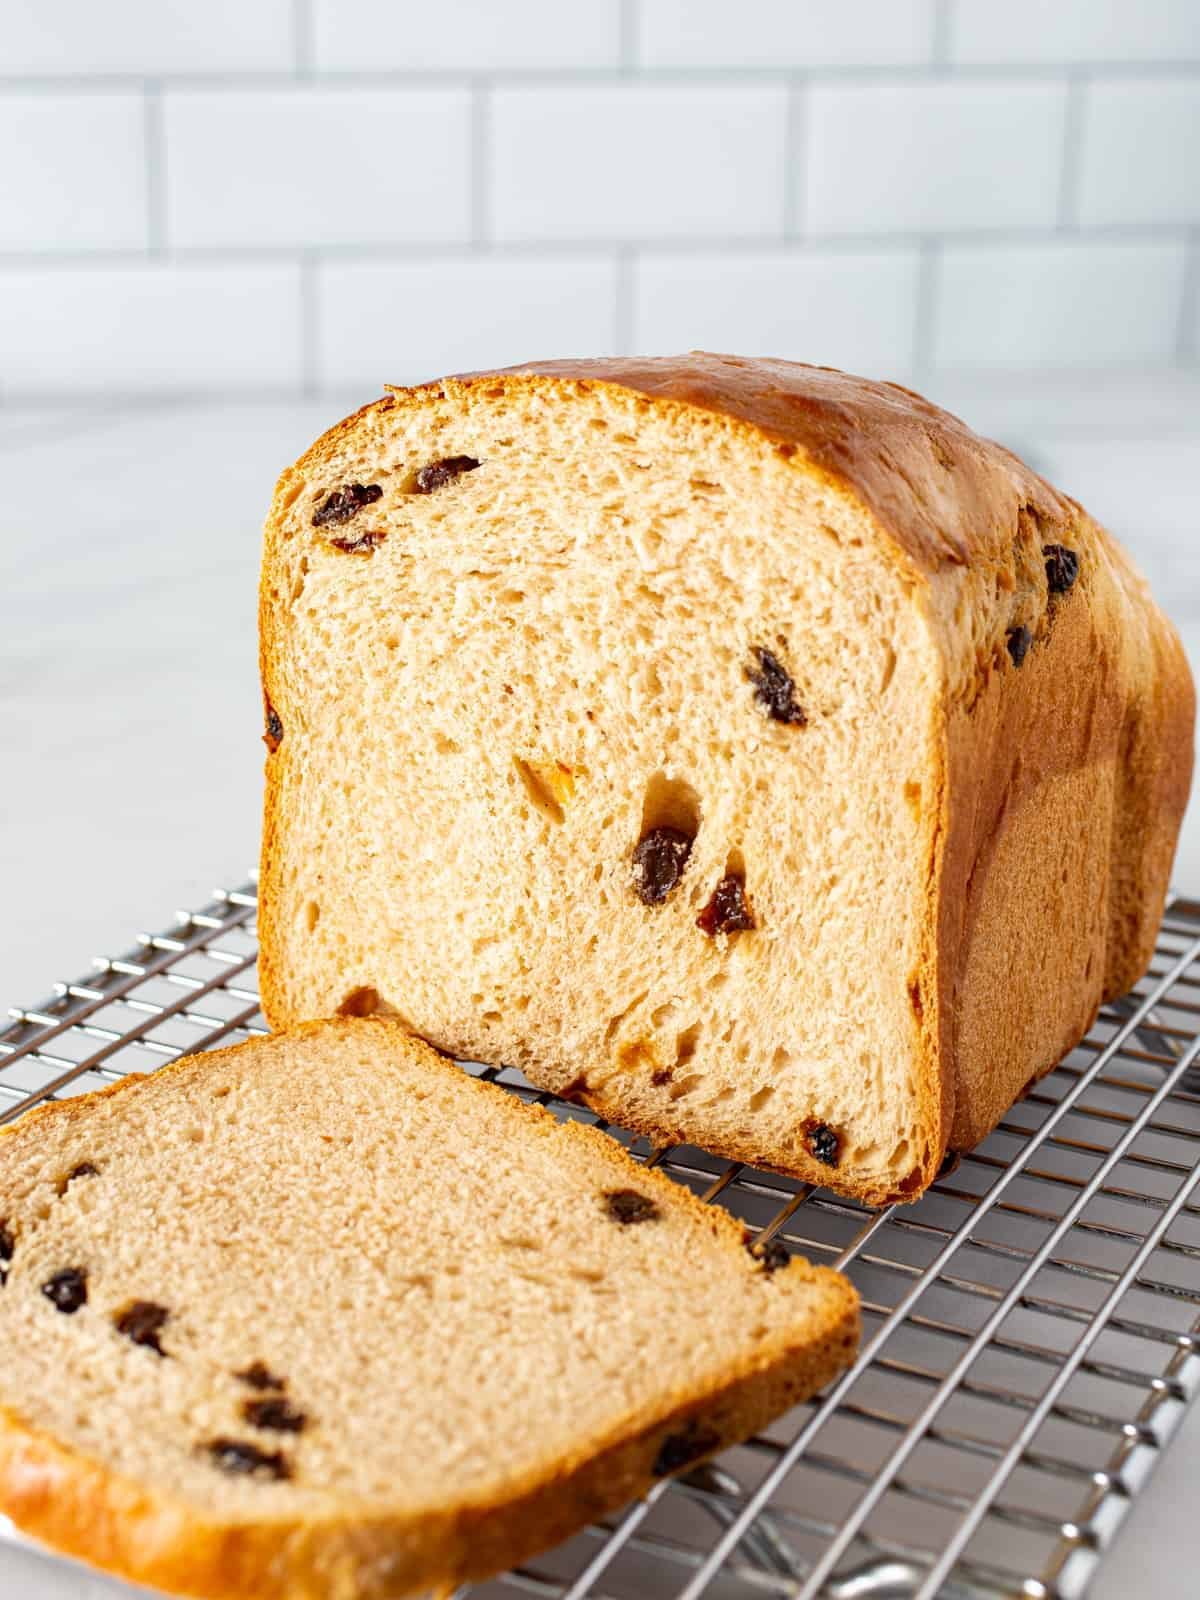 Cinnamon raisin bread loaf sliced.